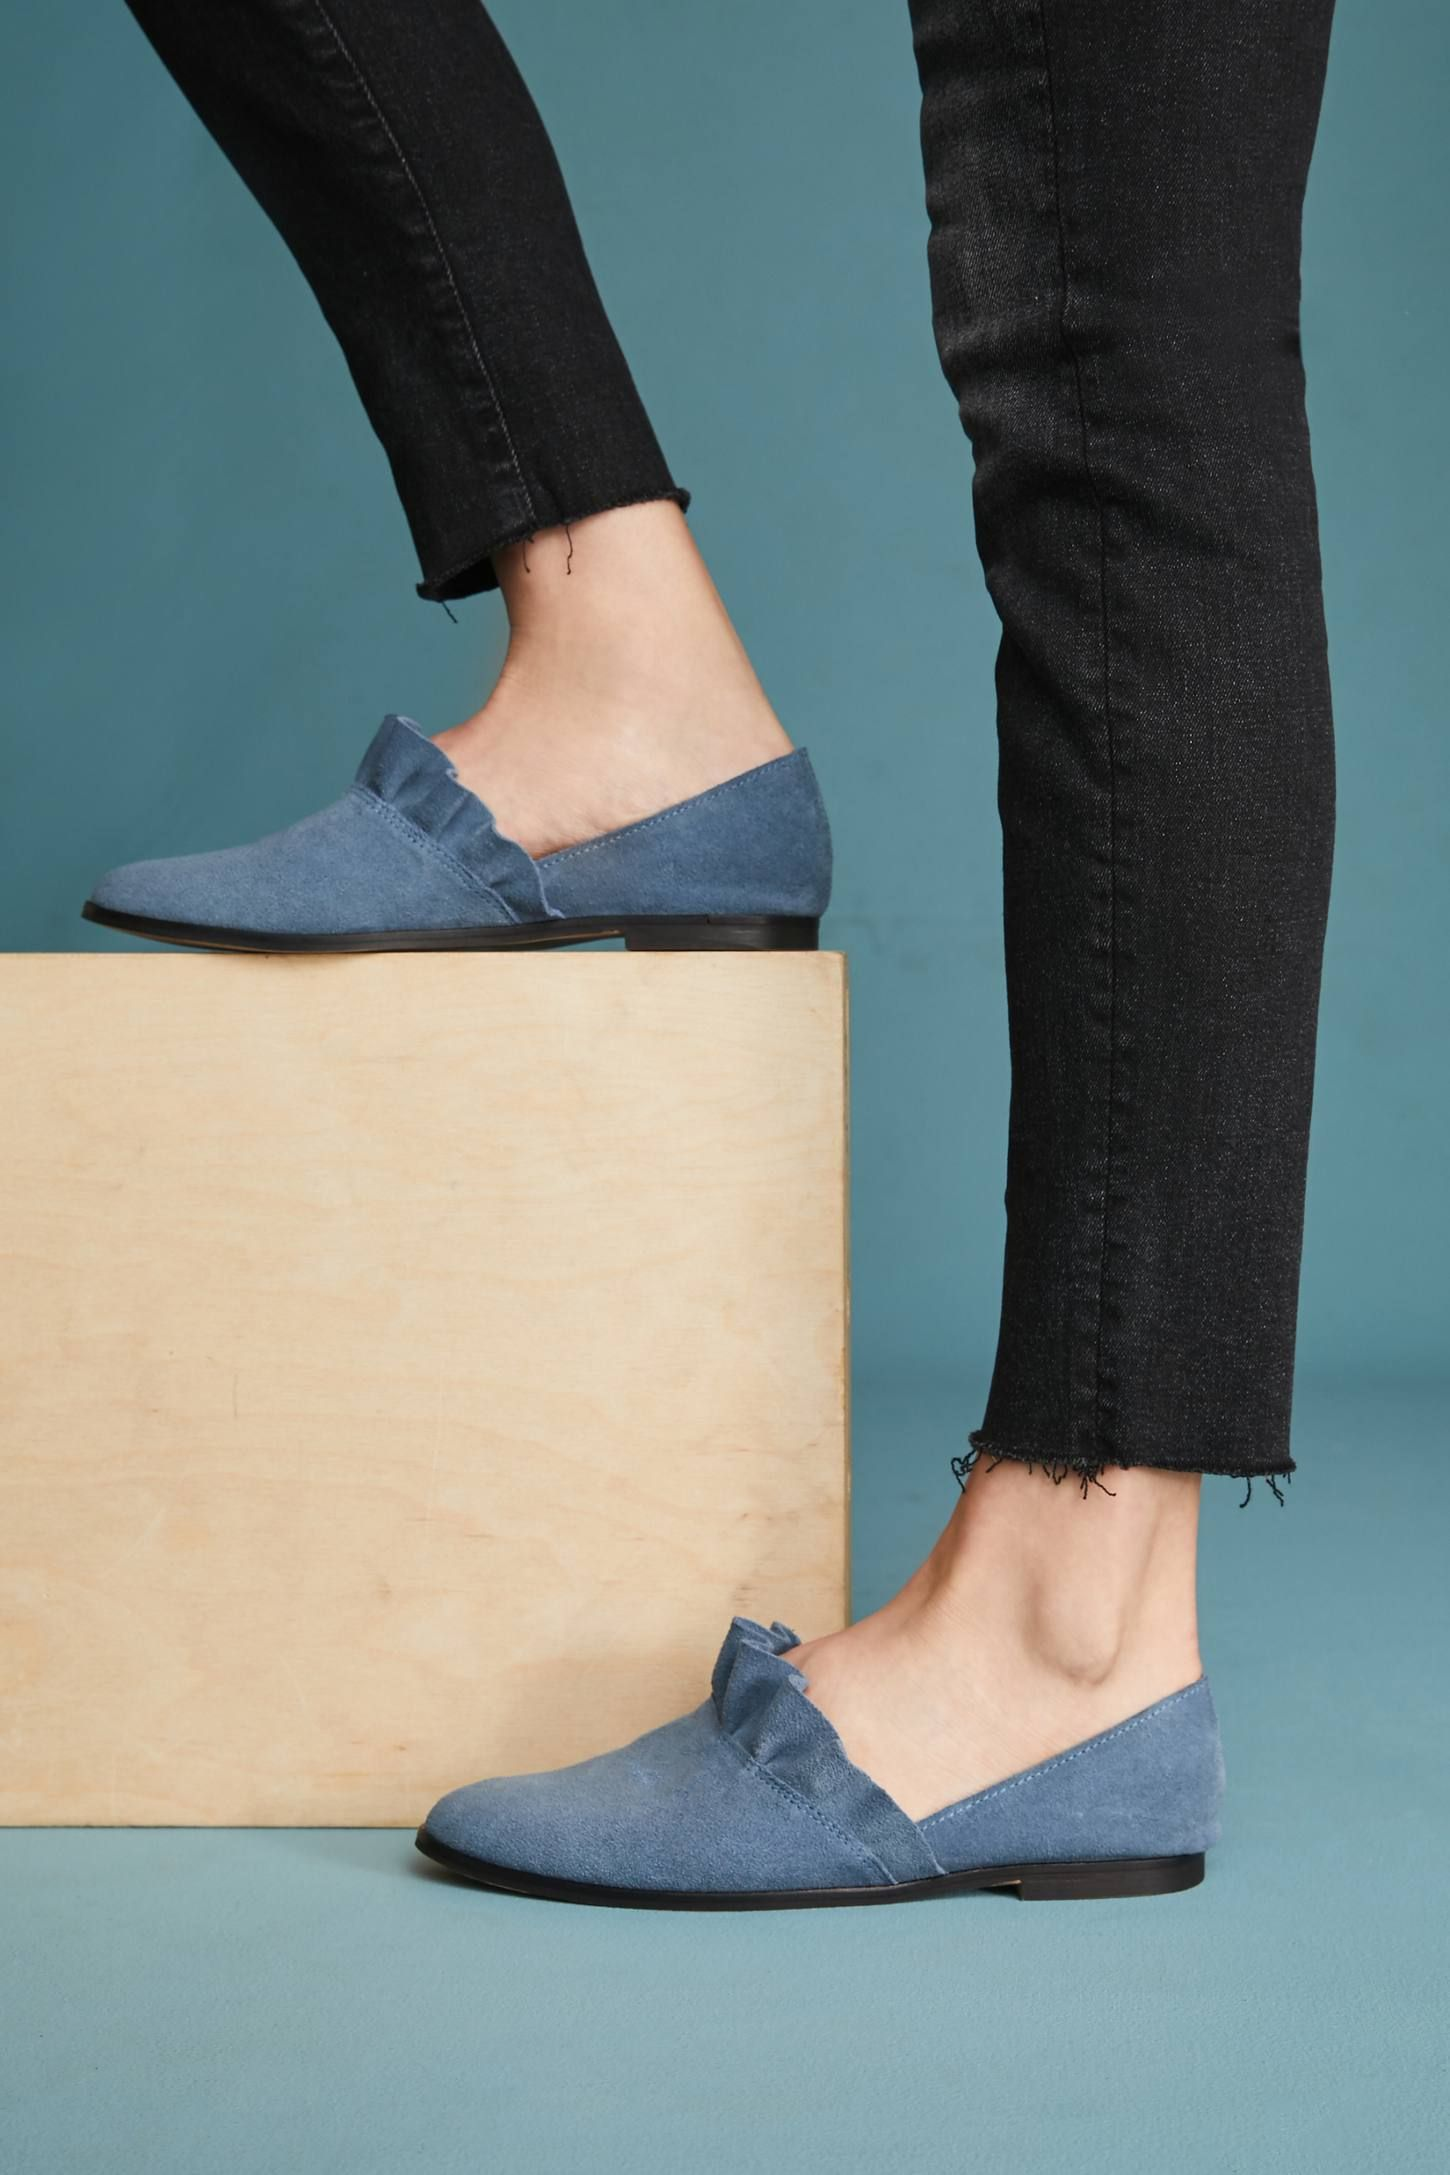 41b6a01174e0 Shop the Klub Nico Gabbie Ruffled Flats and more Anthropologie at  Anthropologie today. Read customer reviews, discover product details and  more.